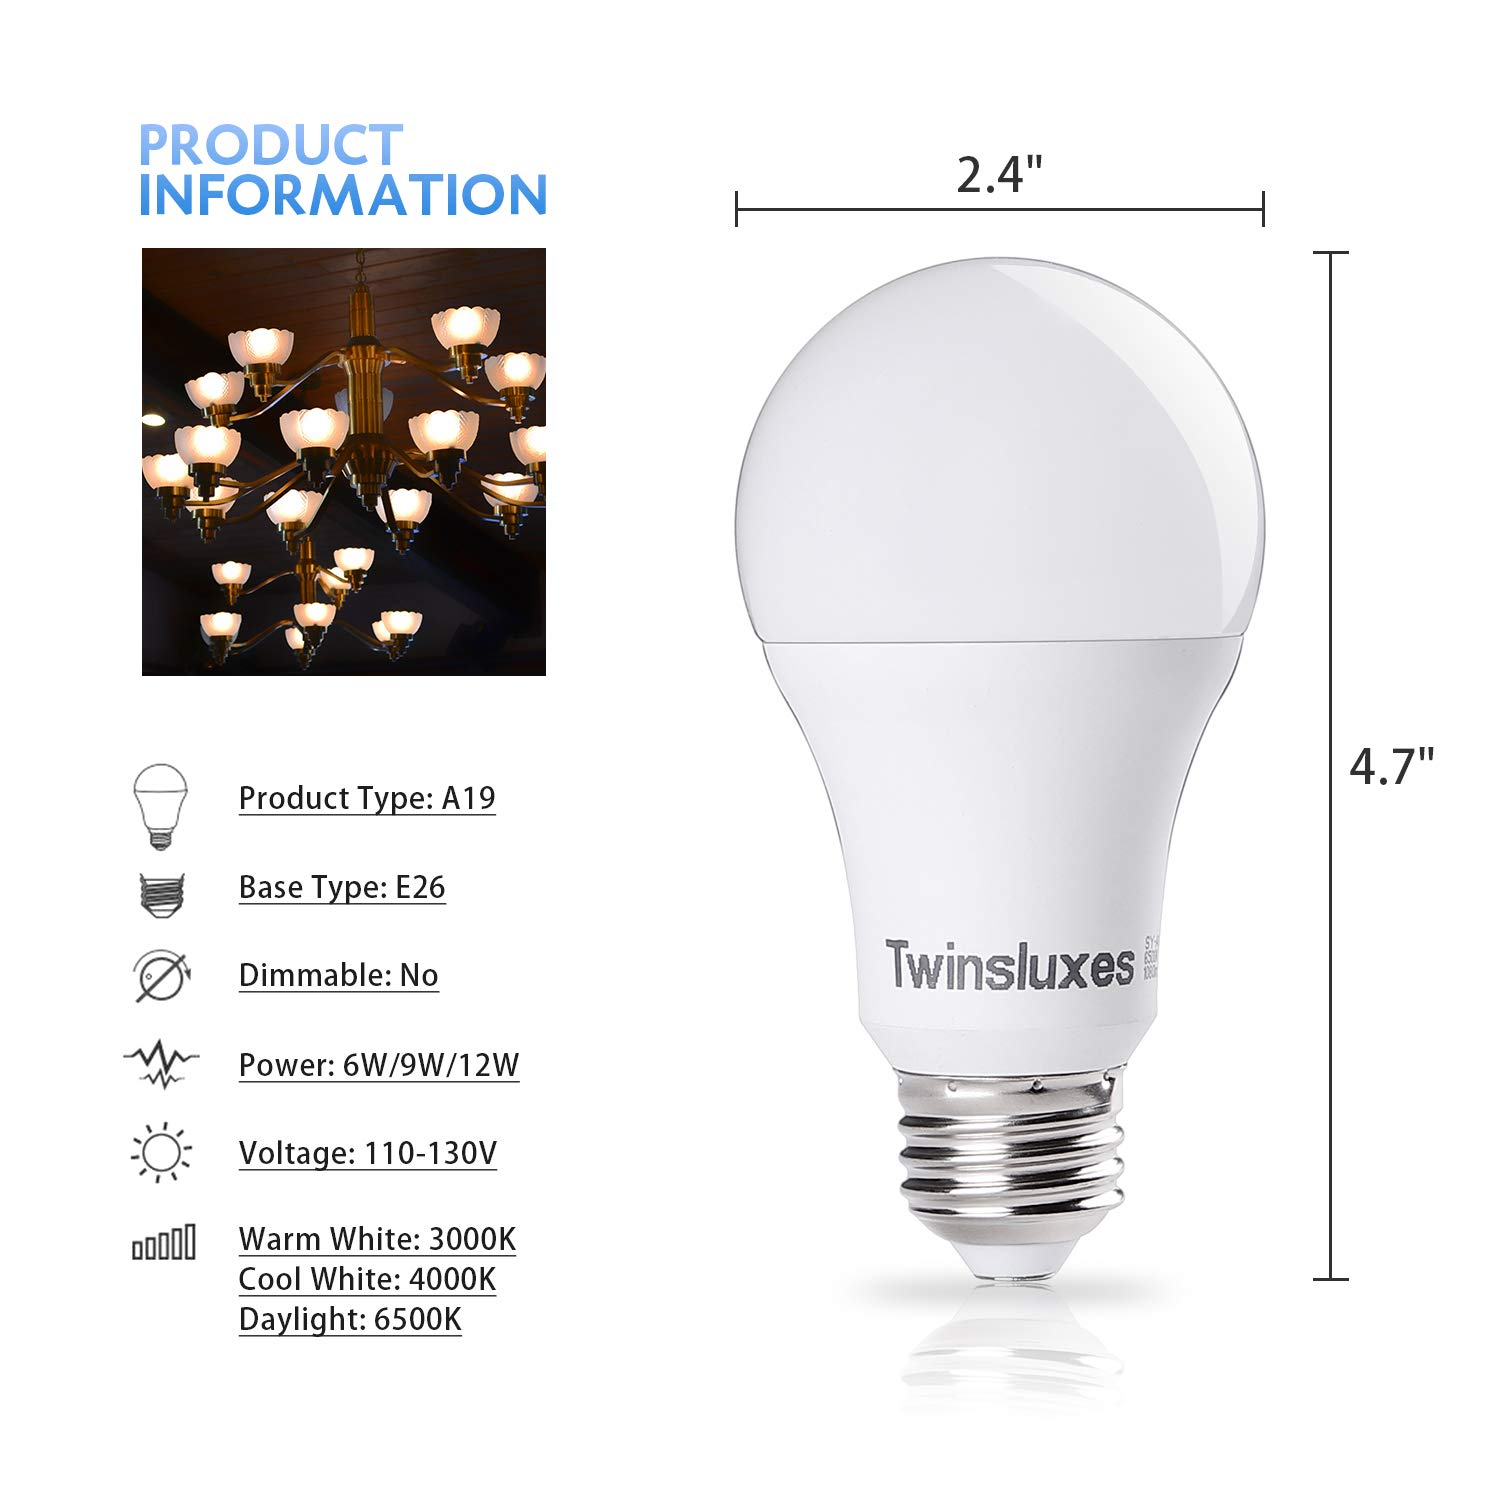 Non-Dimmable LED Light Bulbs 9-watt (60 watt Equivalent) 810 lm, Warm White (3000k), E26 Base, A19